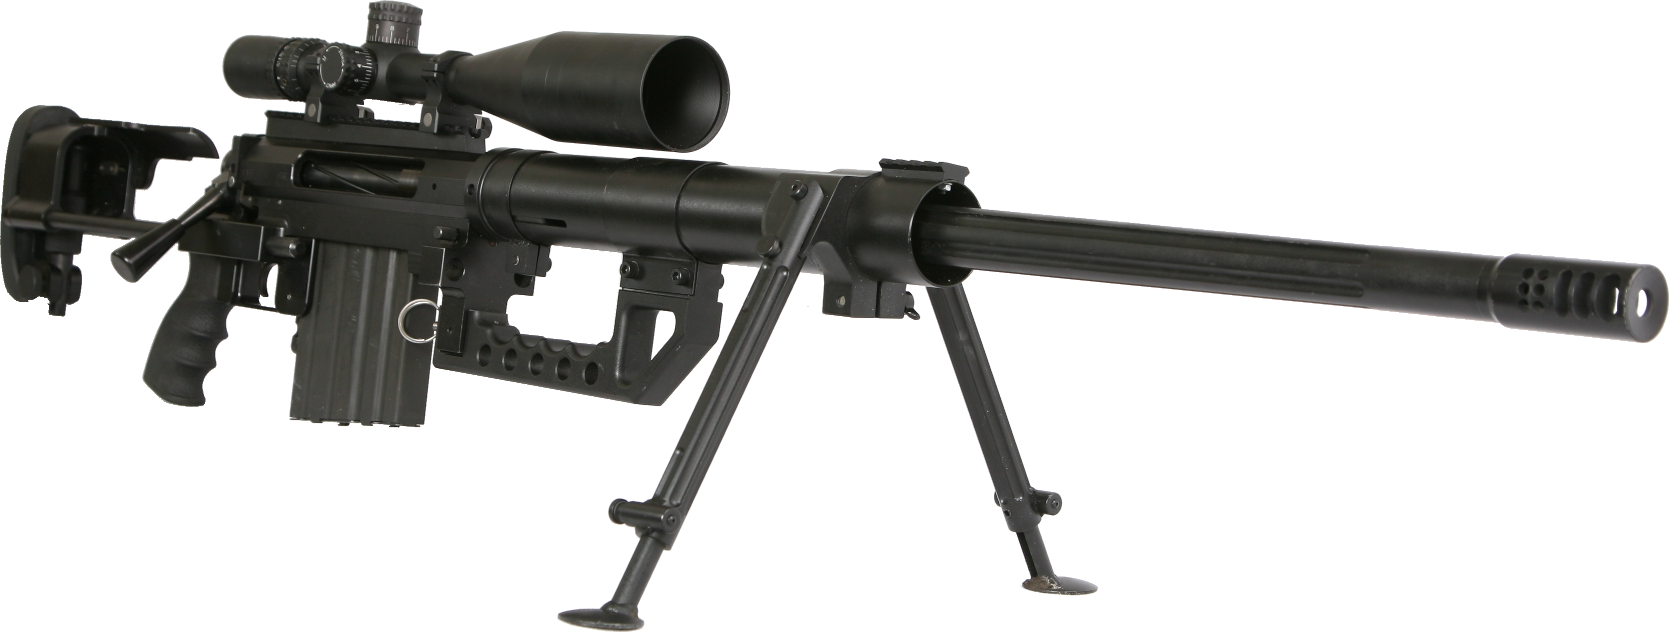 Cheytac llc gate to. Intervention png clip library download